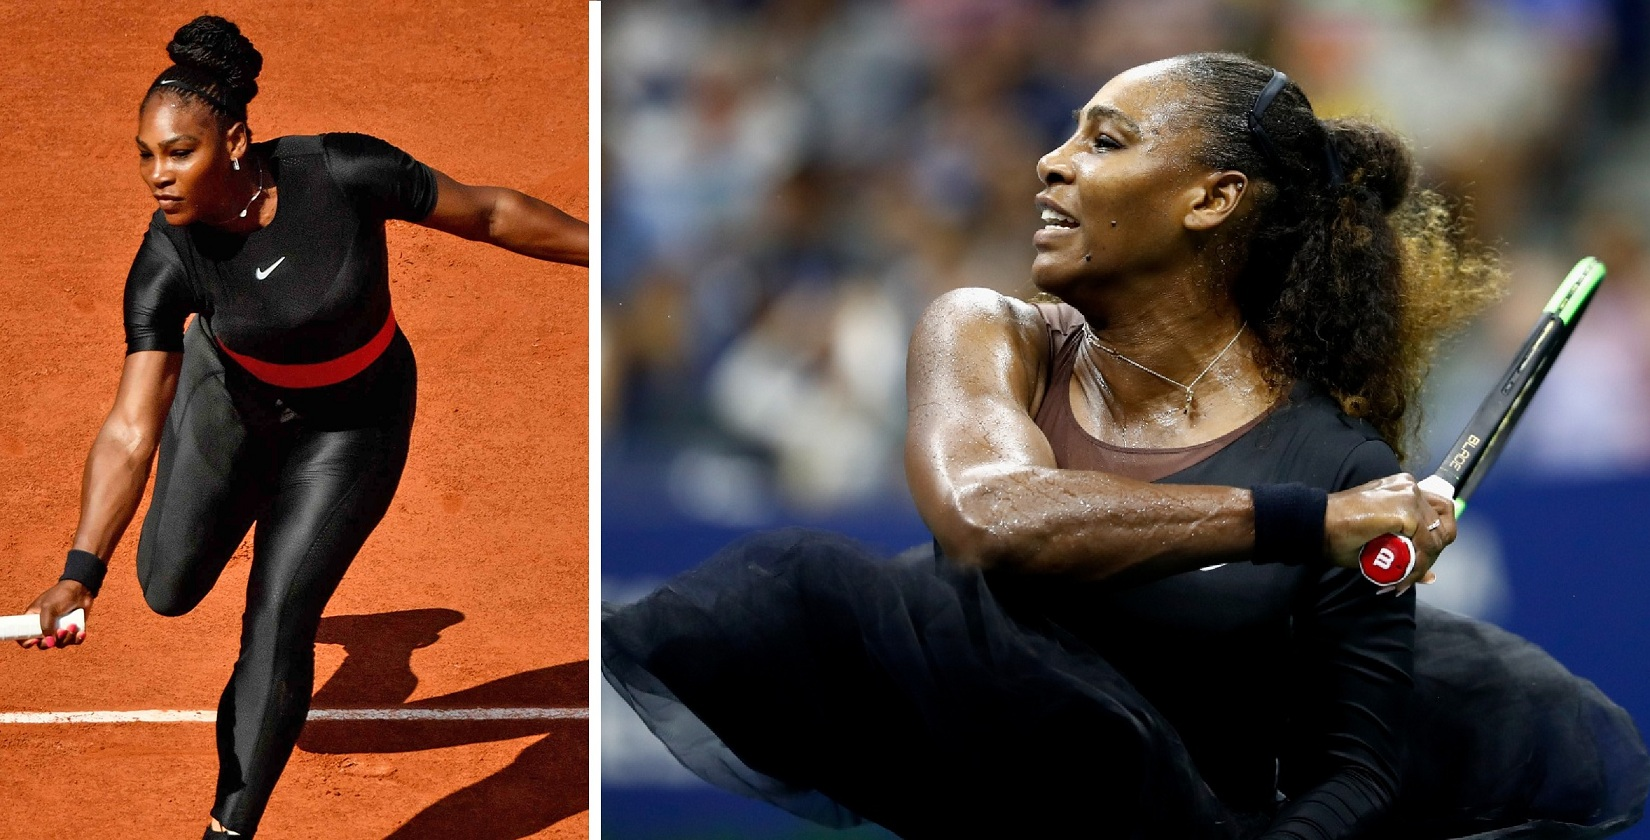 Serena Williams responds to backlash over her Catsuit by wearing a Tutu during match!